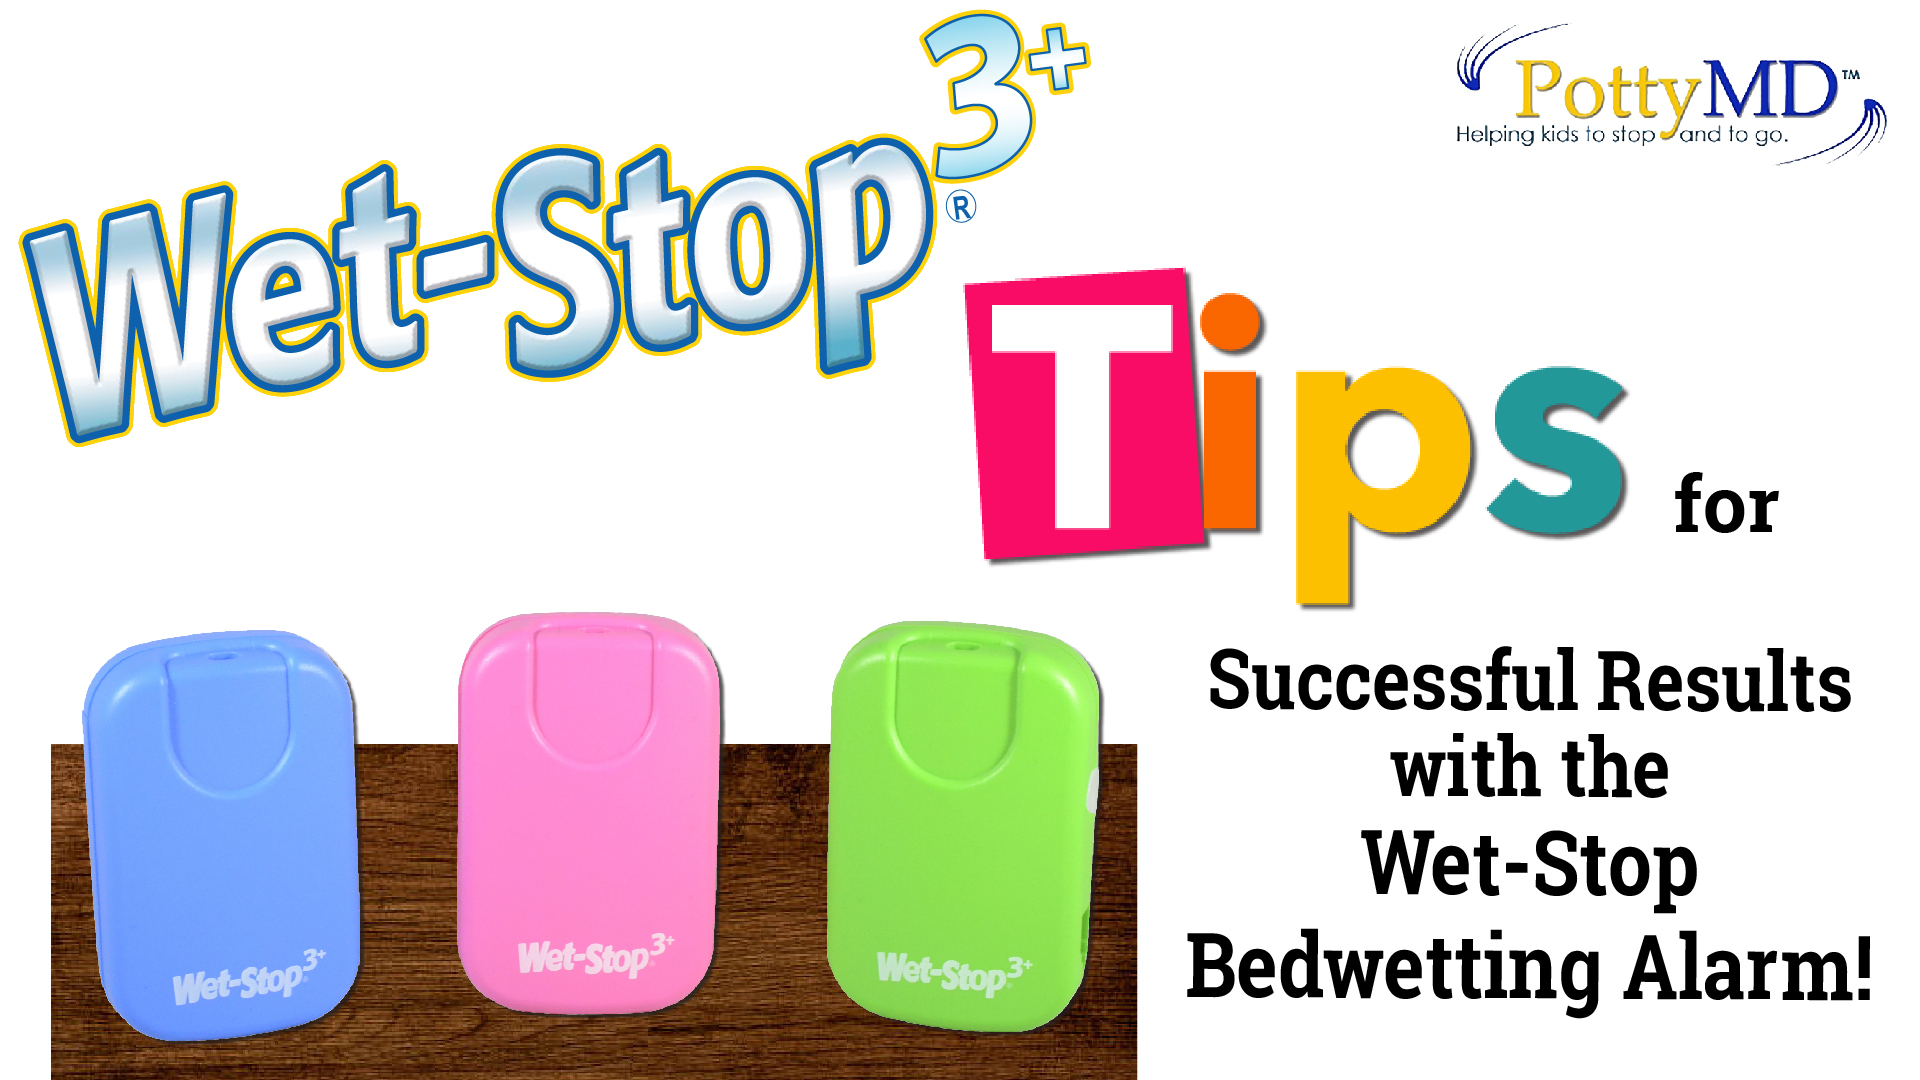 wet stop3 bedwetting alarm reviews